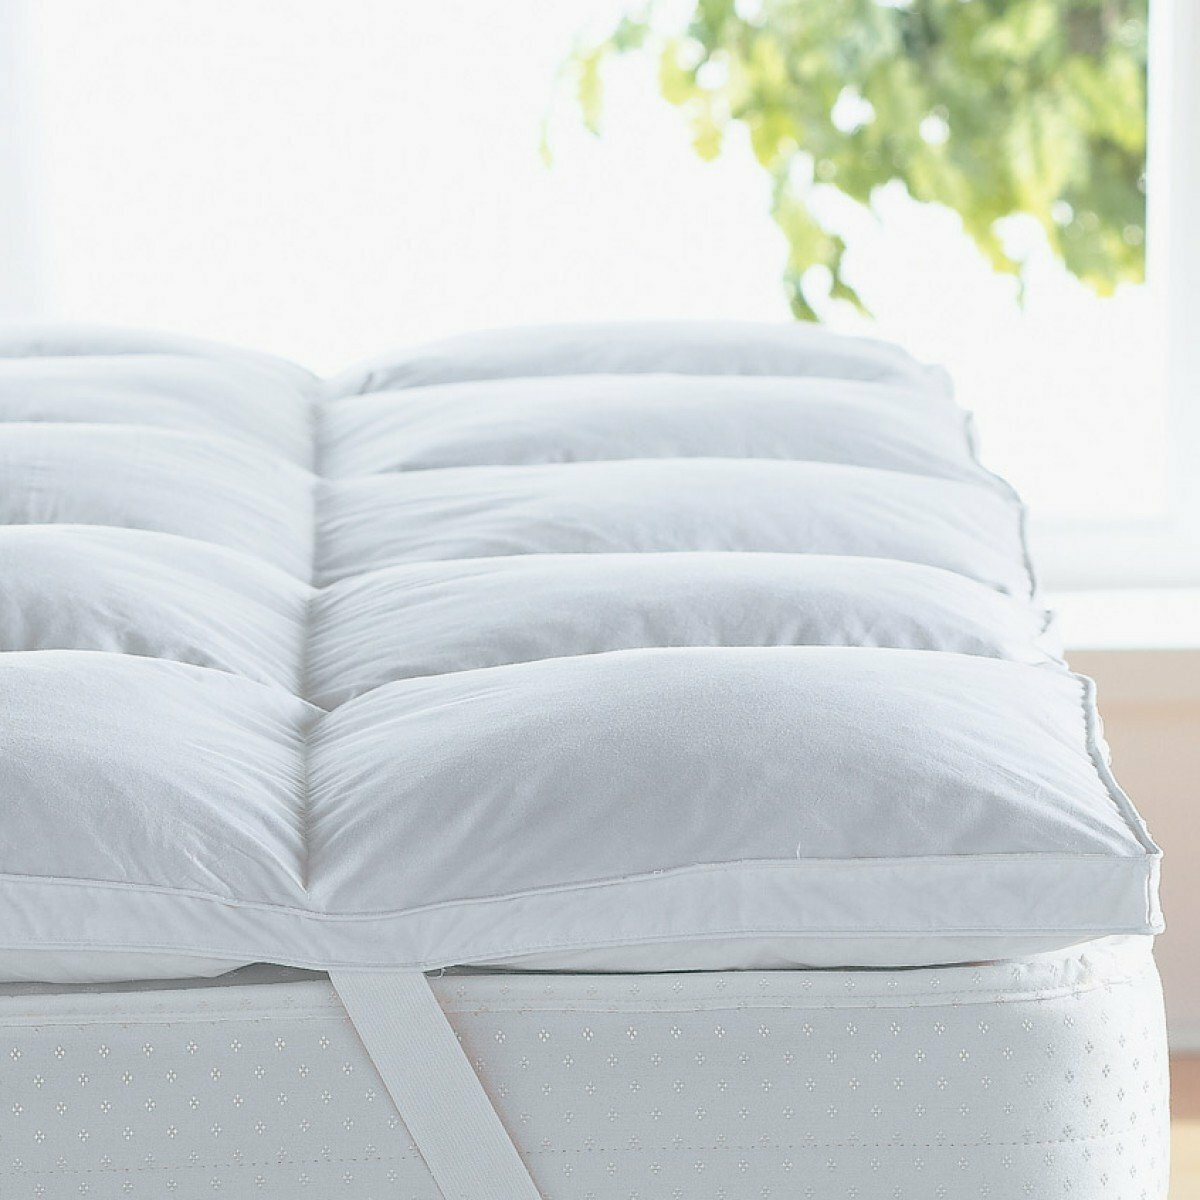 thick mattress pad. contemporary mattress alwyn home gerstner thick hypoallergenic 2 on mattress pad d